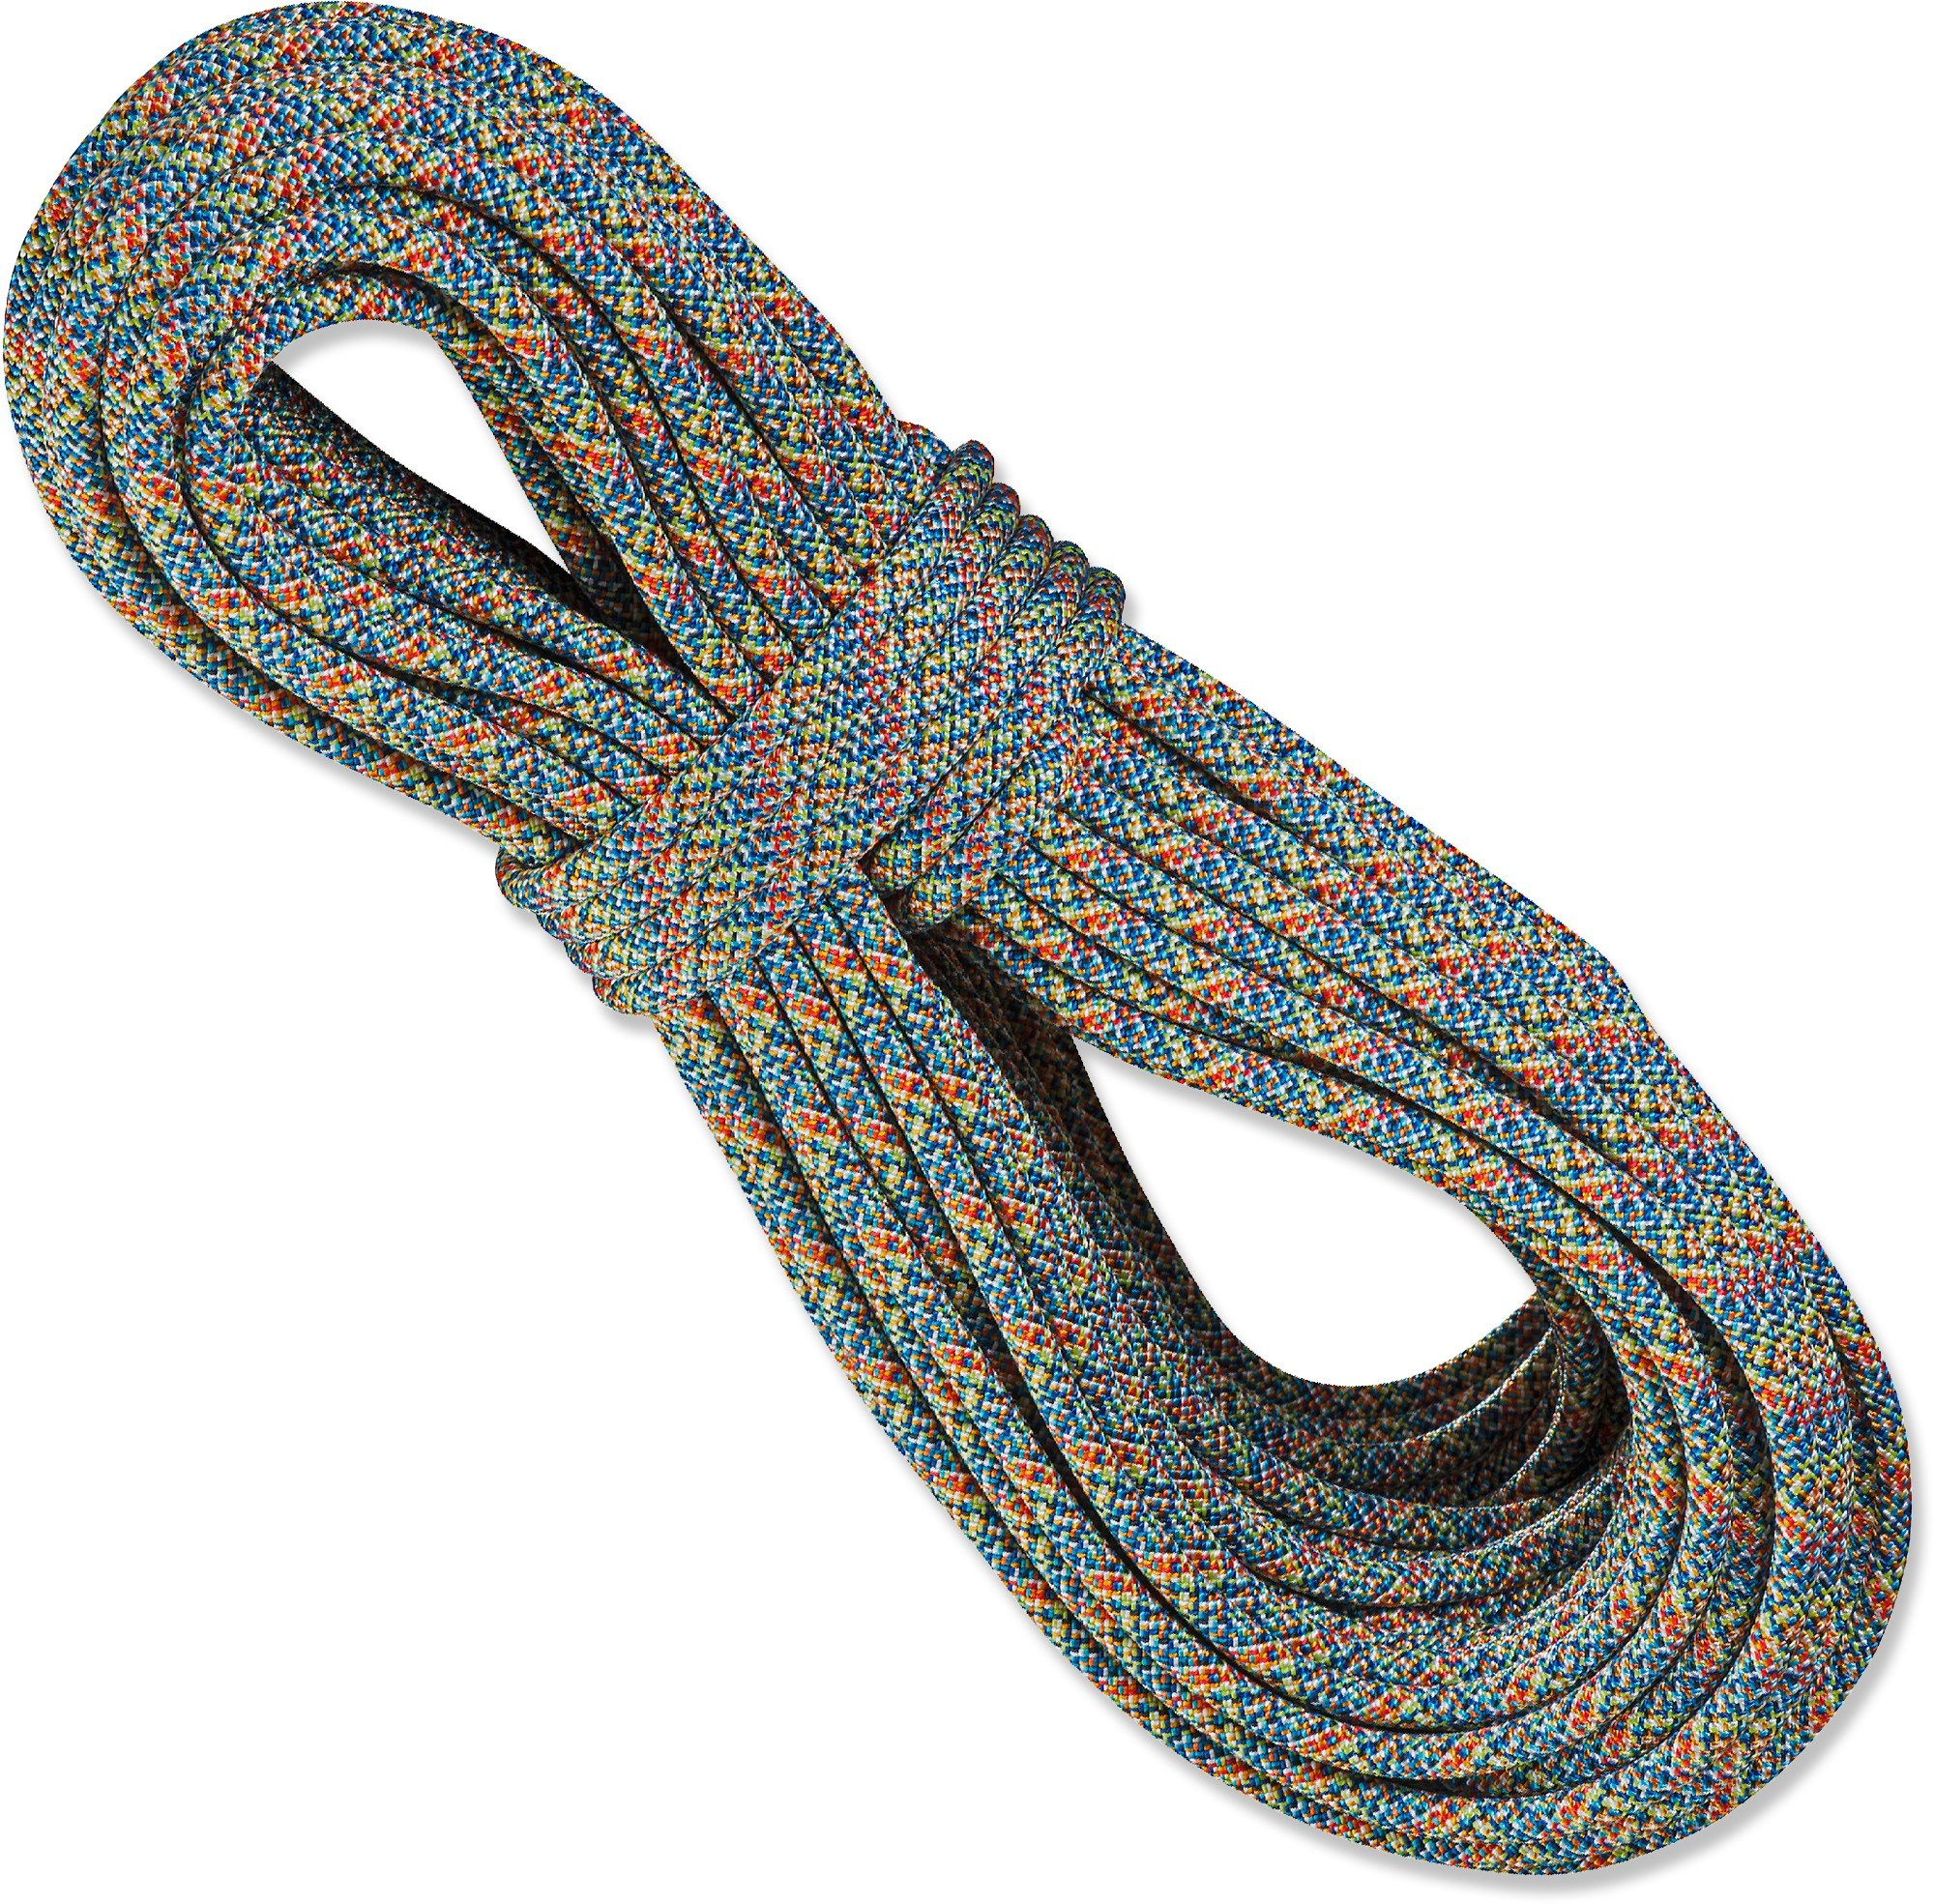 Edelrid Boa Eco 9.8mm Non-Dry Rope